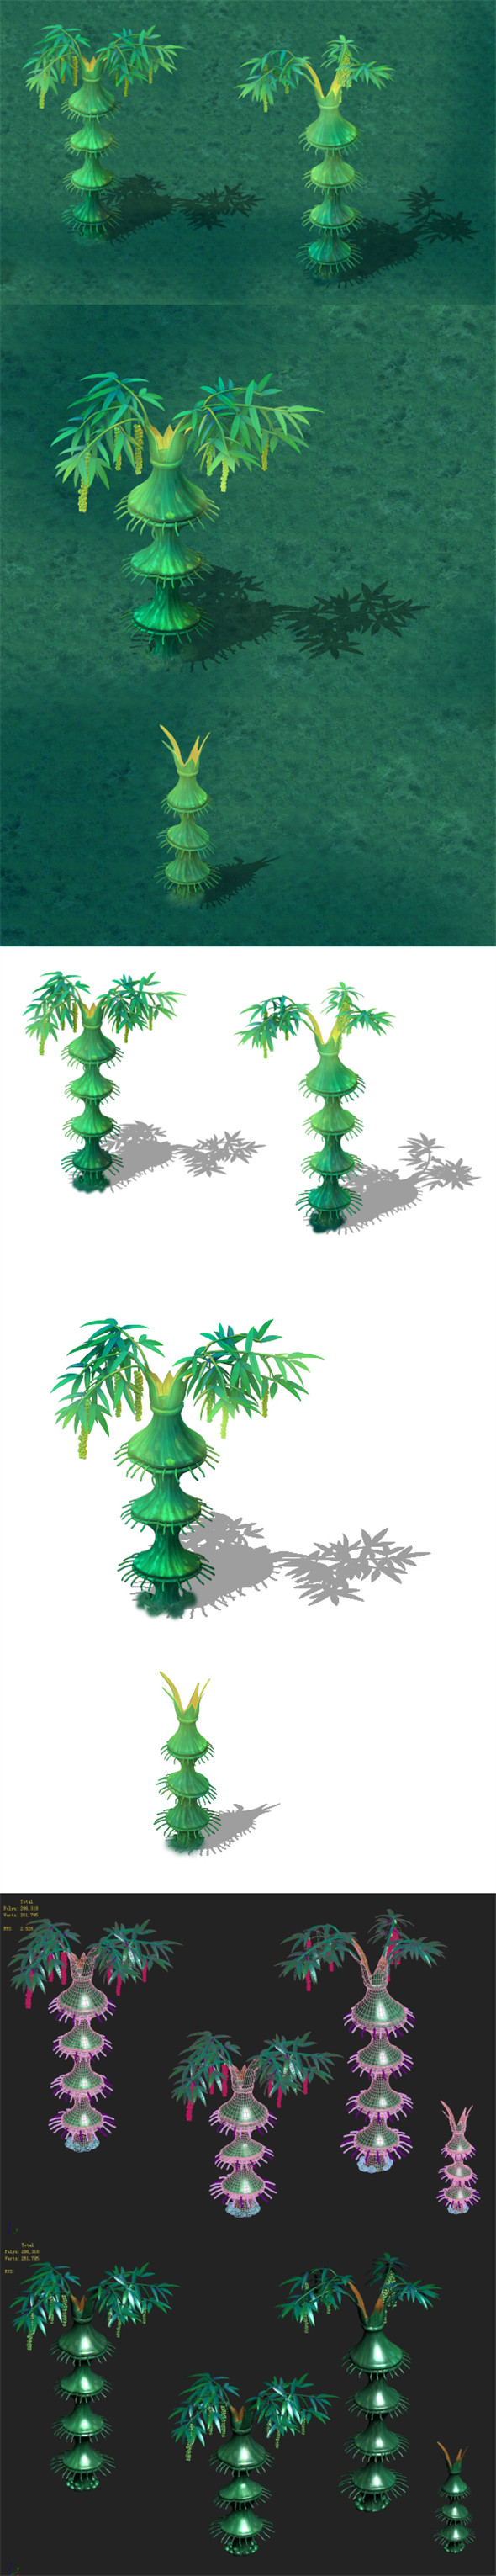 Cartoon Edition - Flower Bamboo Forest - 3DOcean Item for Sale